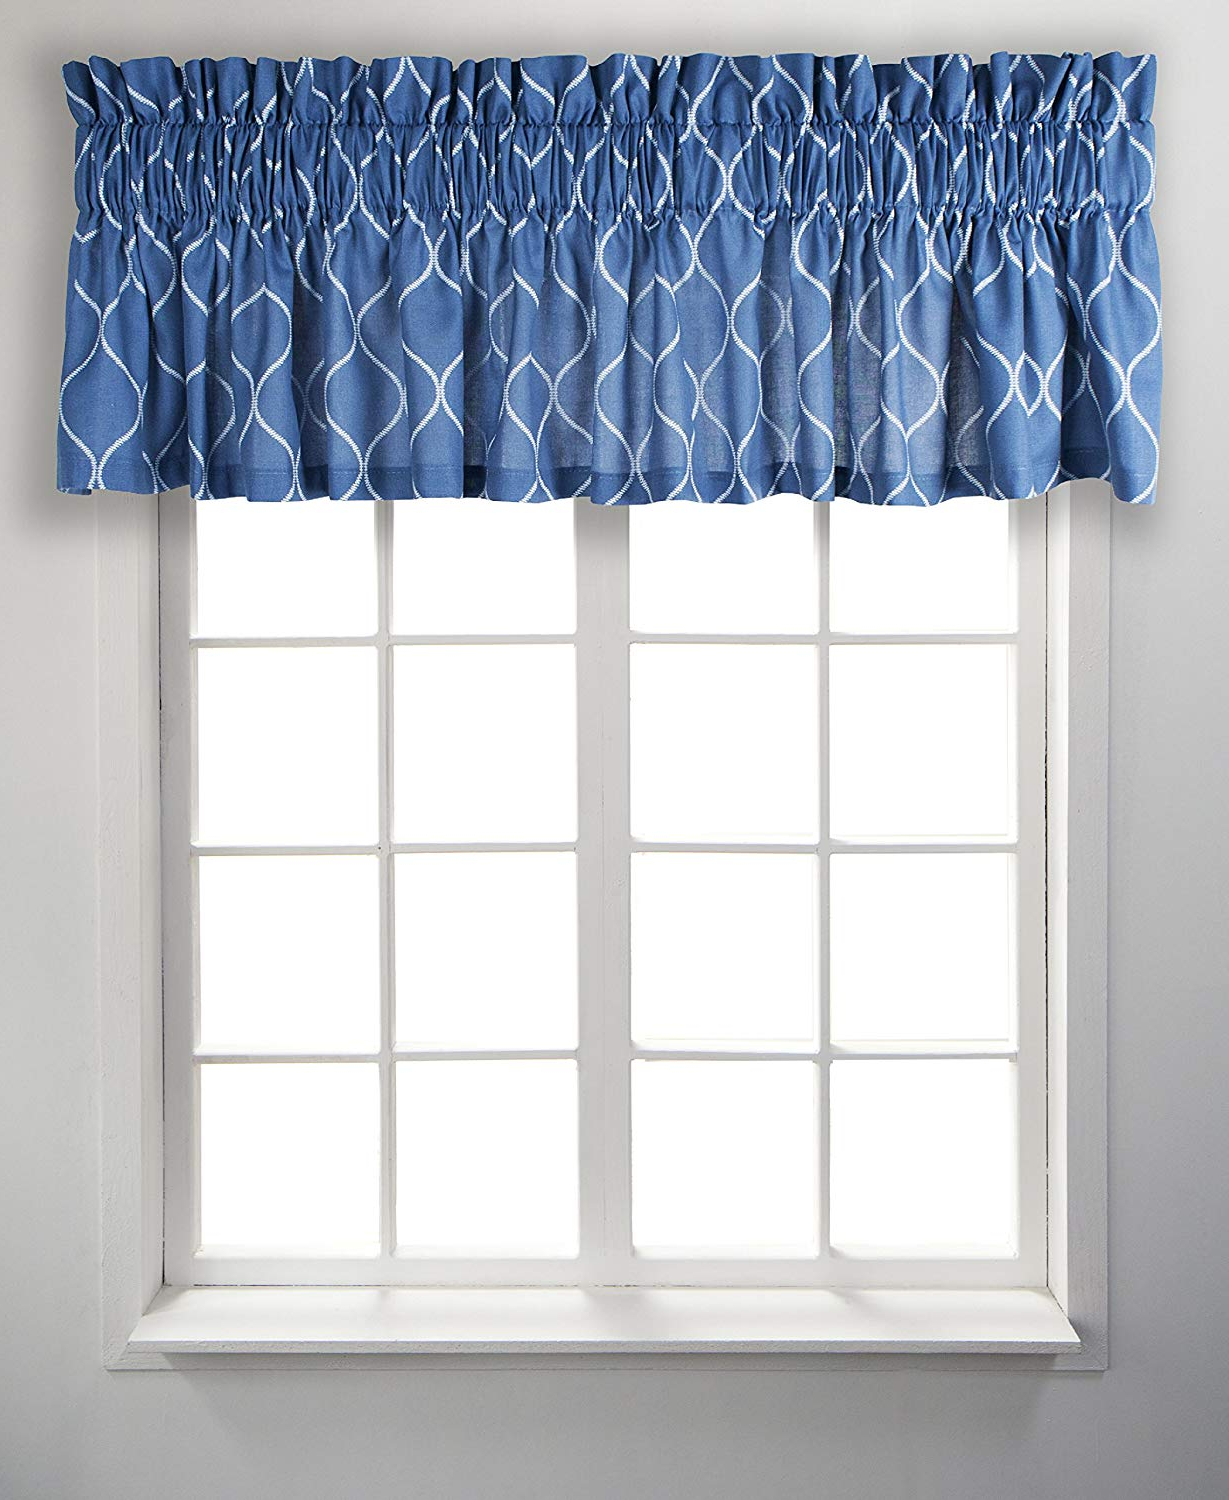 Popular Tailored Toppers With Valances With Regard To Ellis Curtain Trellis, Tailored Valance, Blue (View 9 of 20)